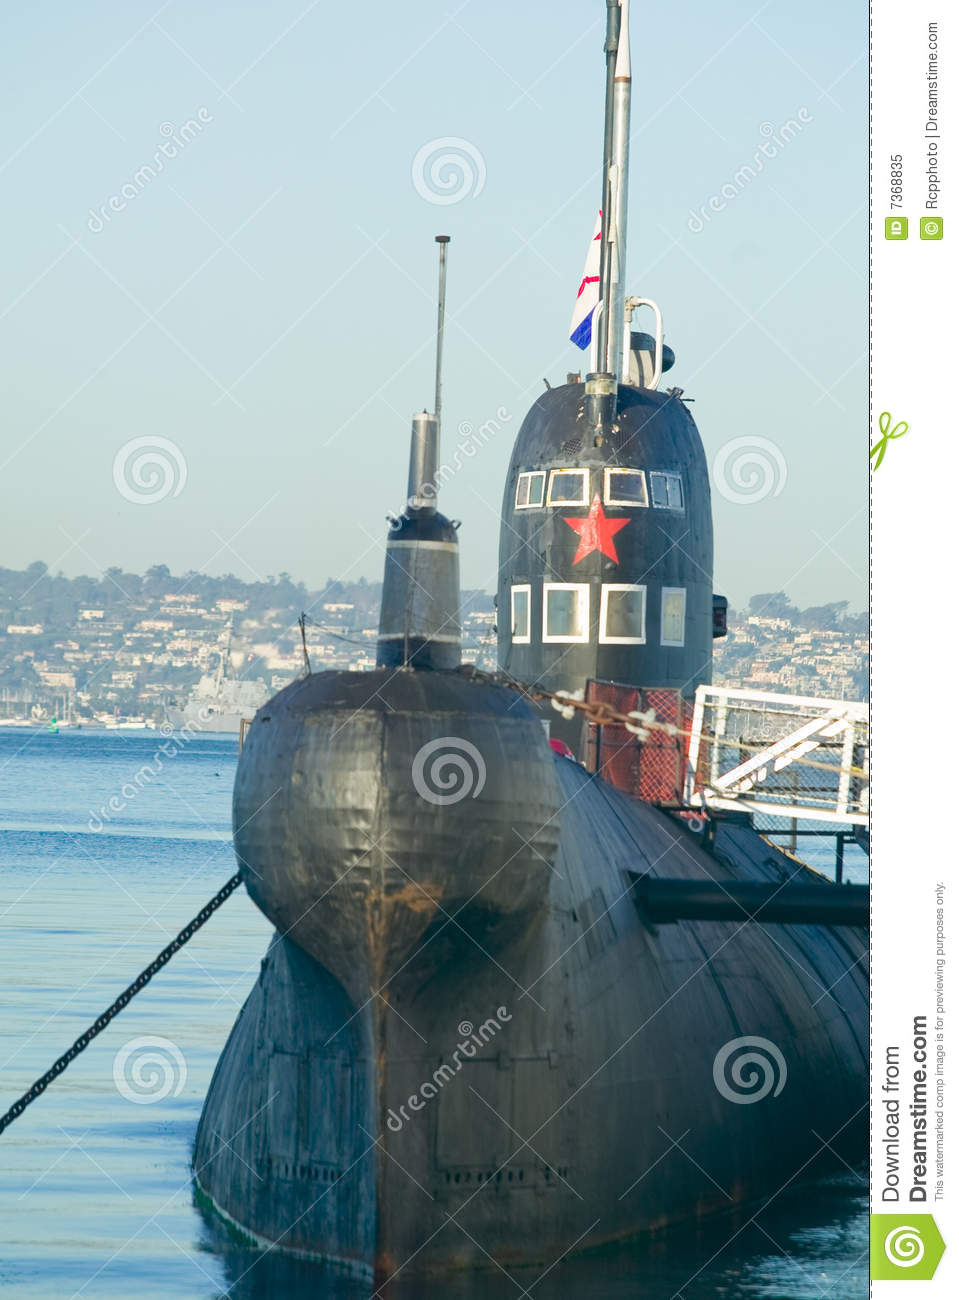 Submarine Russian Attack Boat Stock Image - Image: 7368835